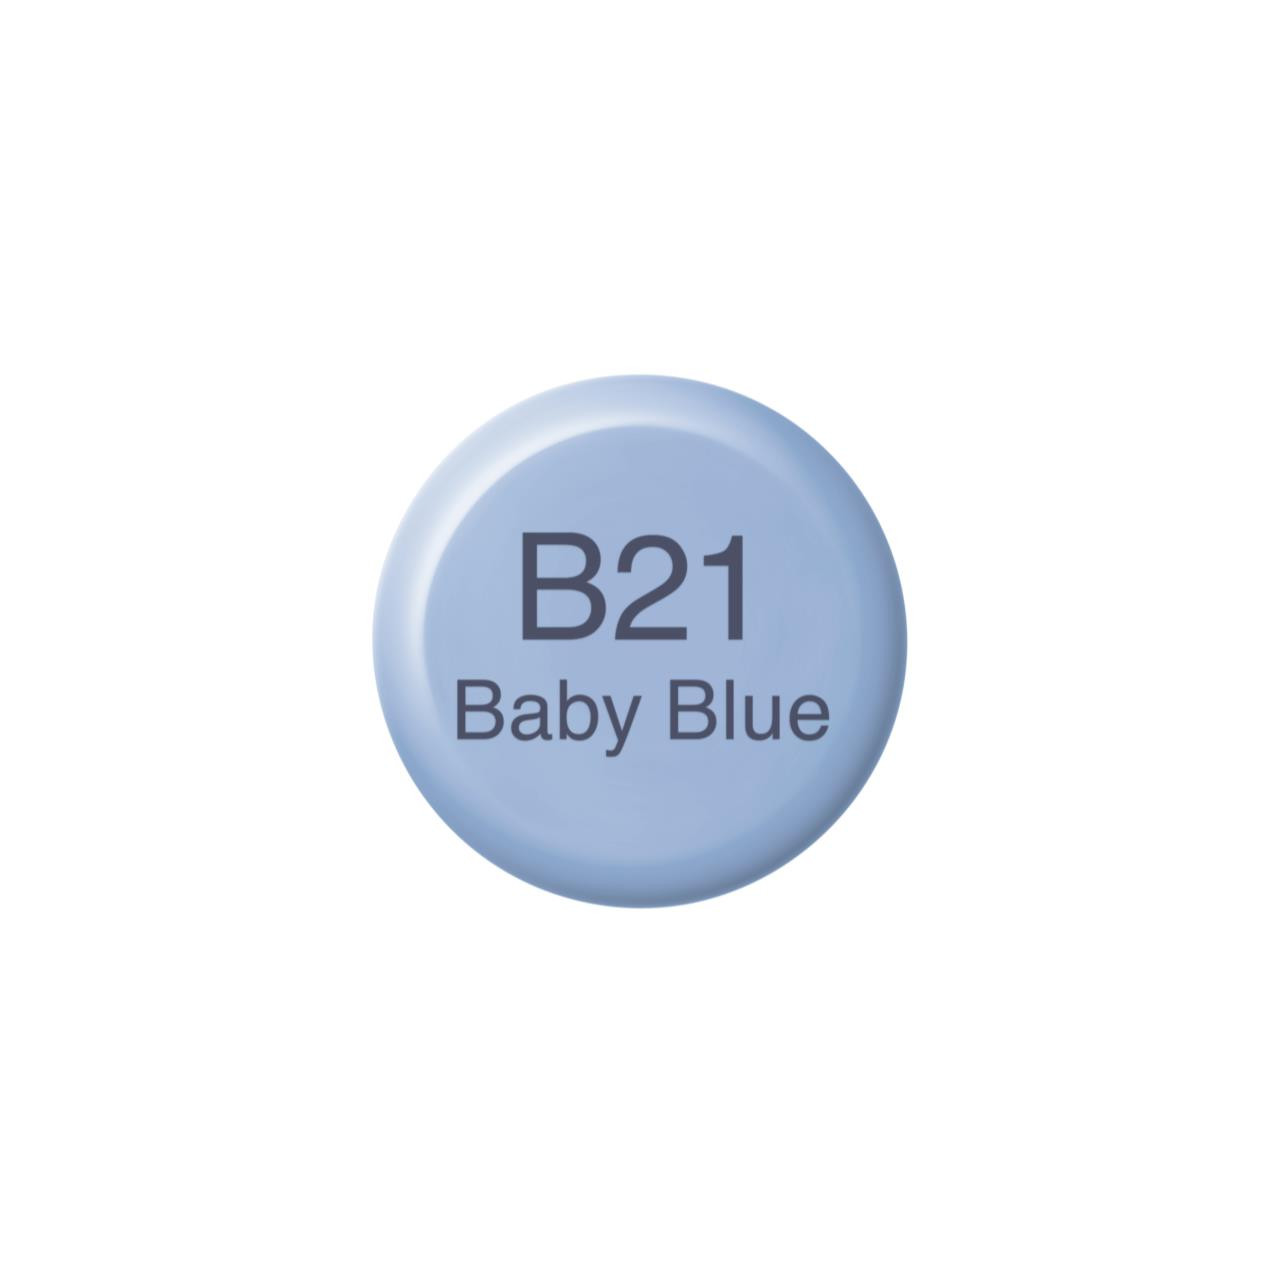 B21 Baby Blue, Copic Ink - 4511338055922